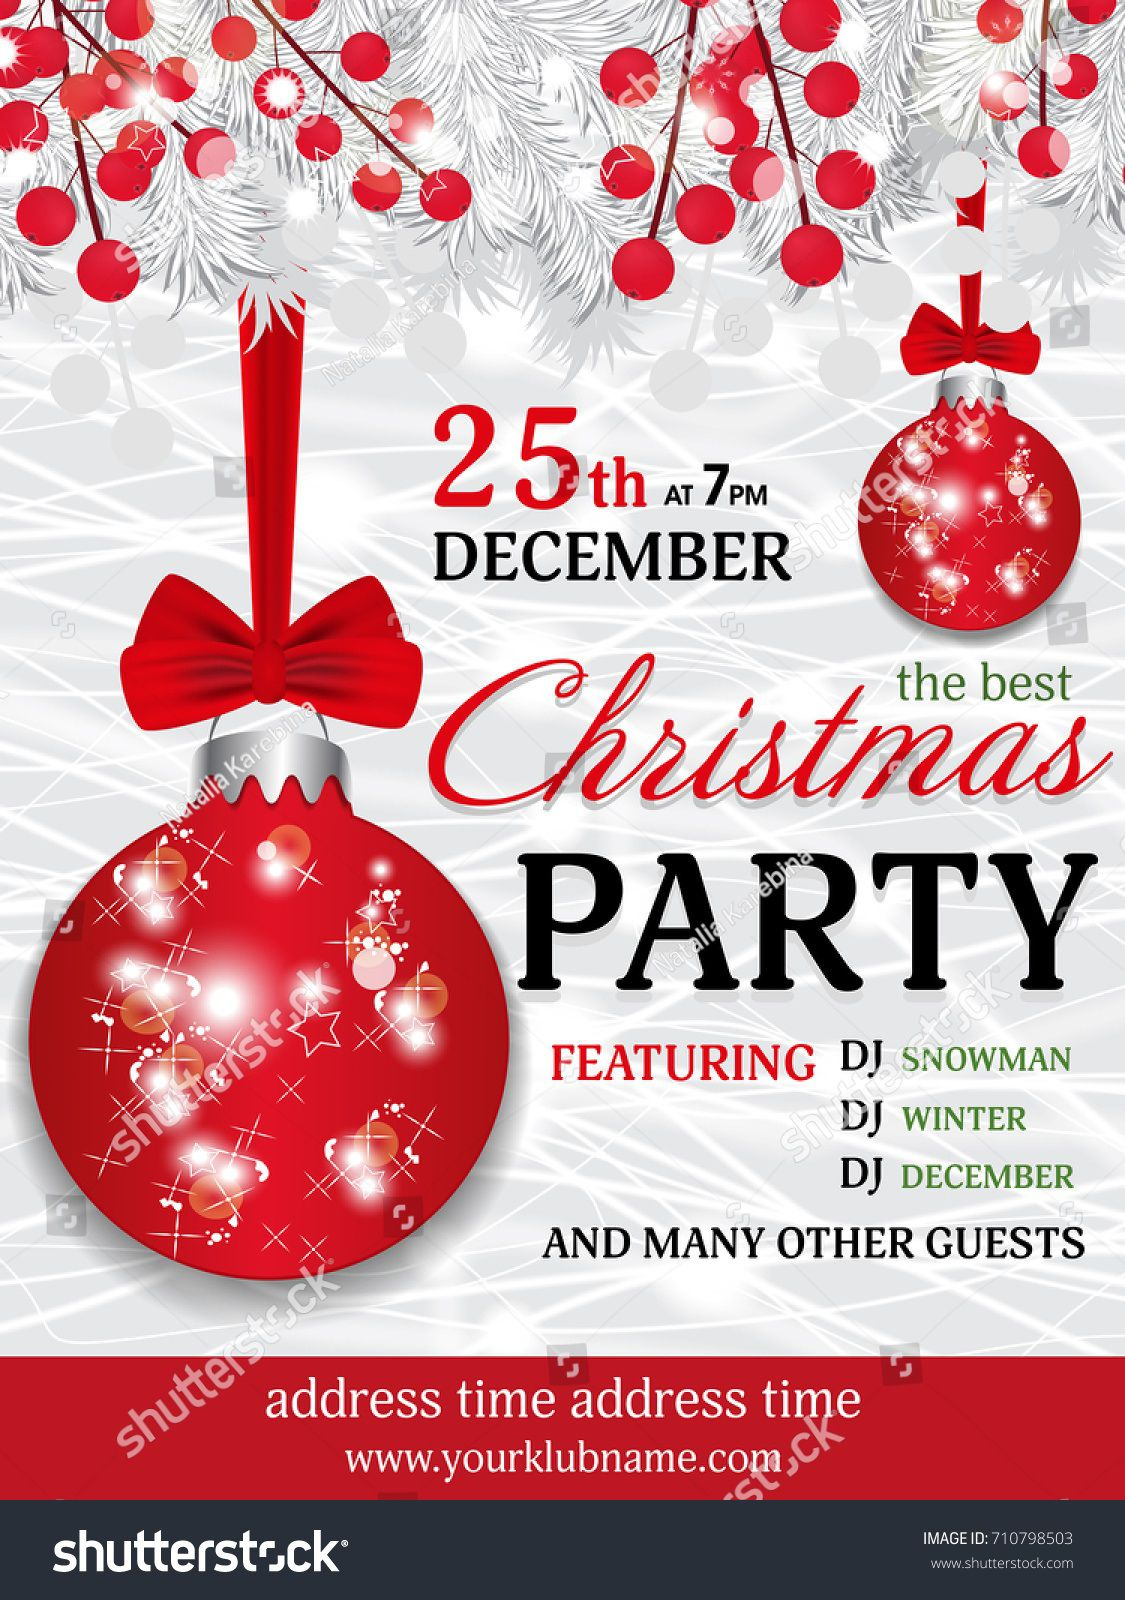 009 Wondrou Christma Party Invitation Template Design  Funny Free Download Word CardFull